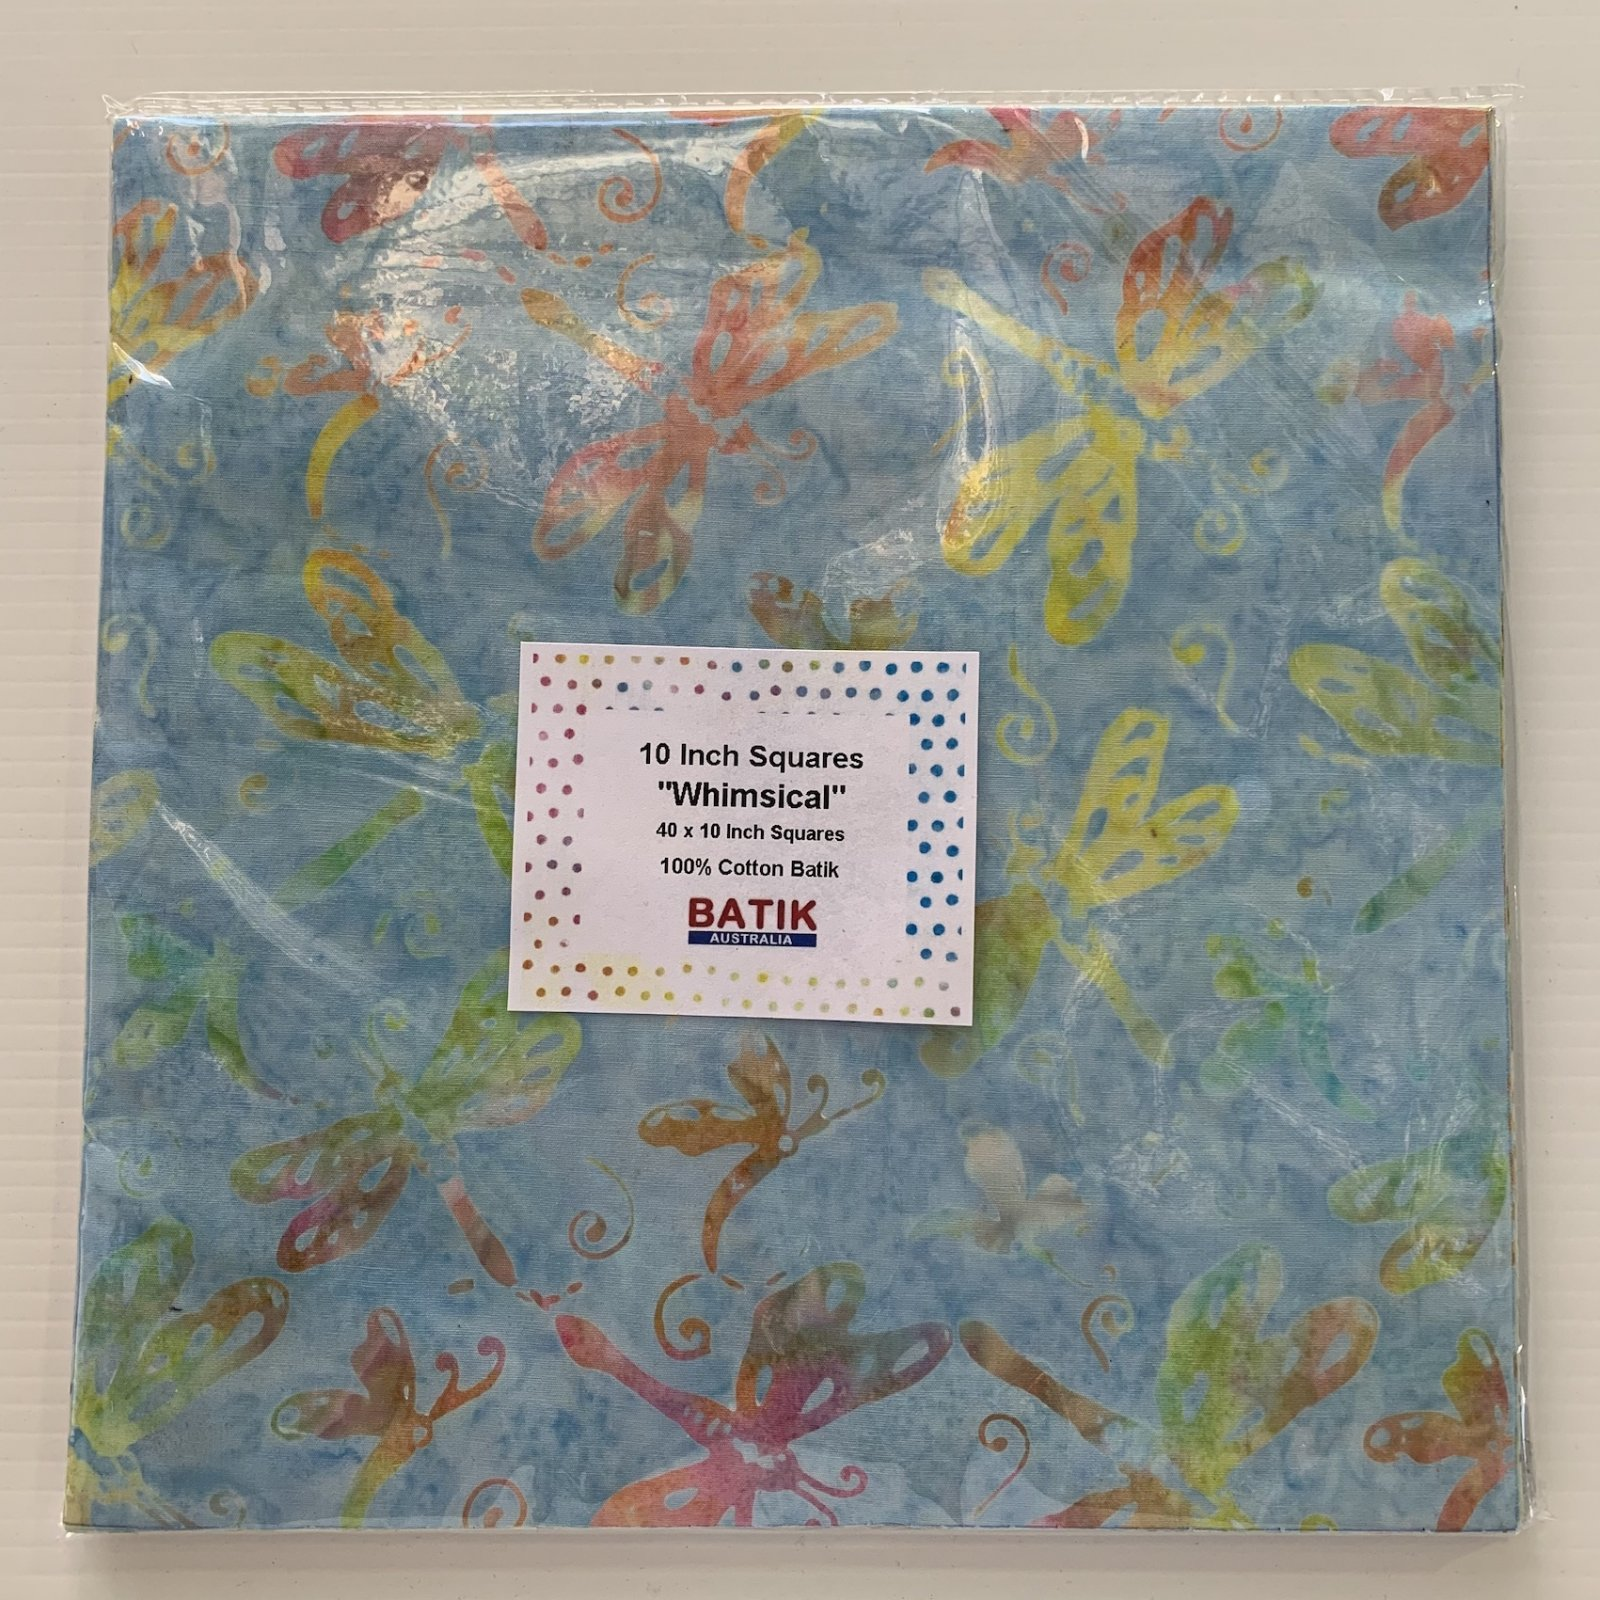 10 Inch Squares Whimsical